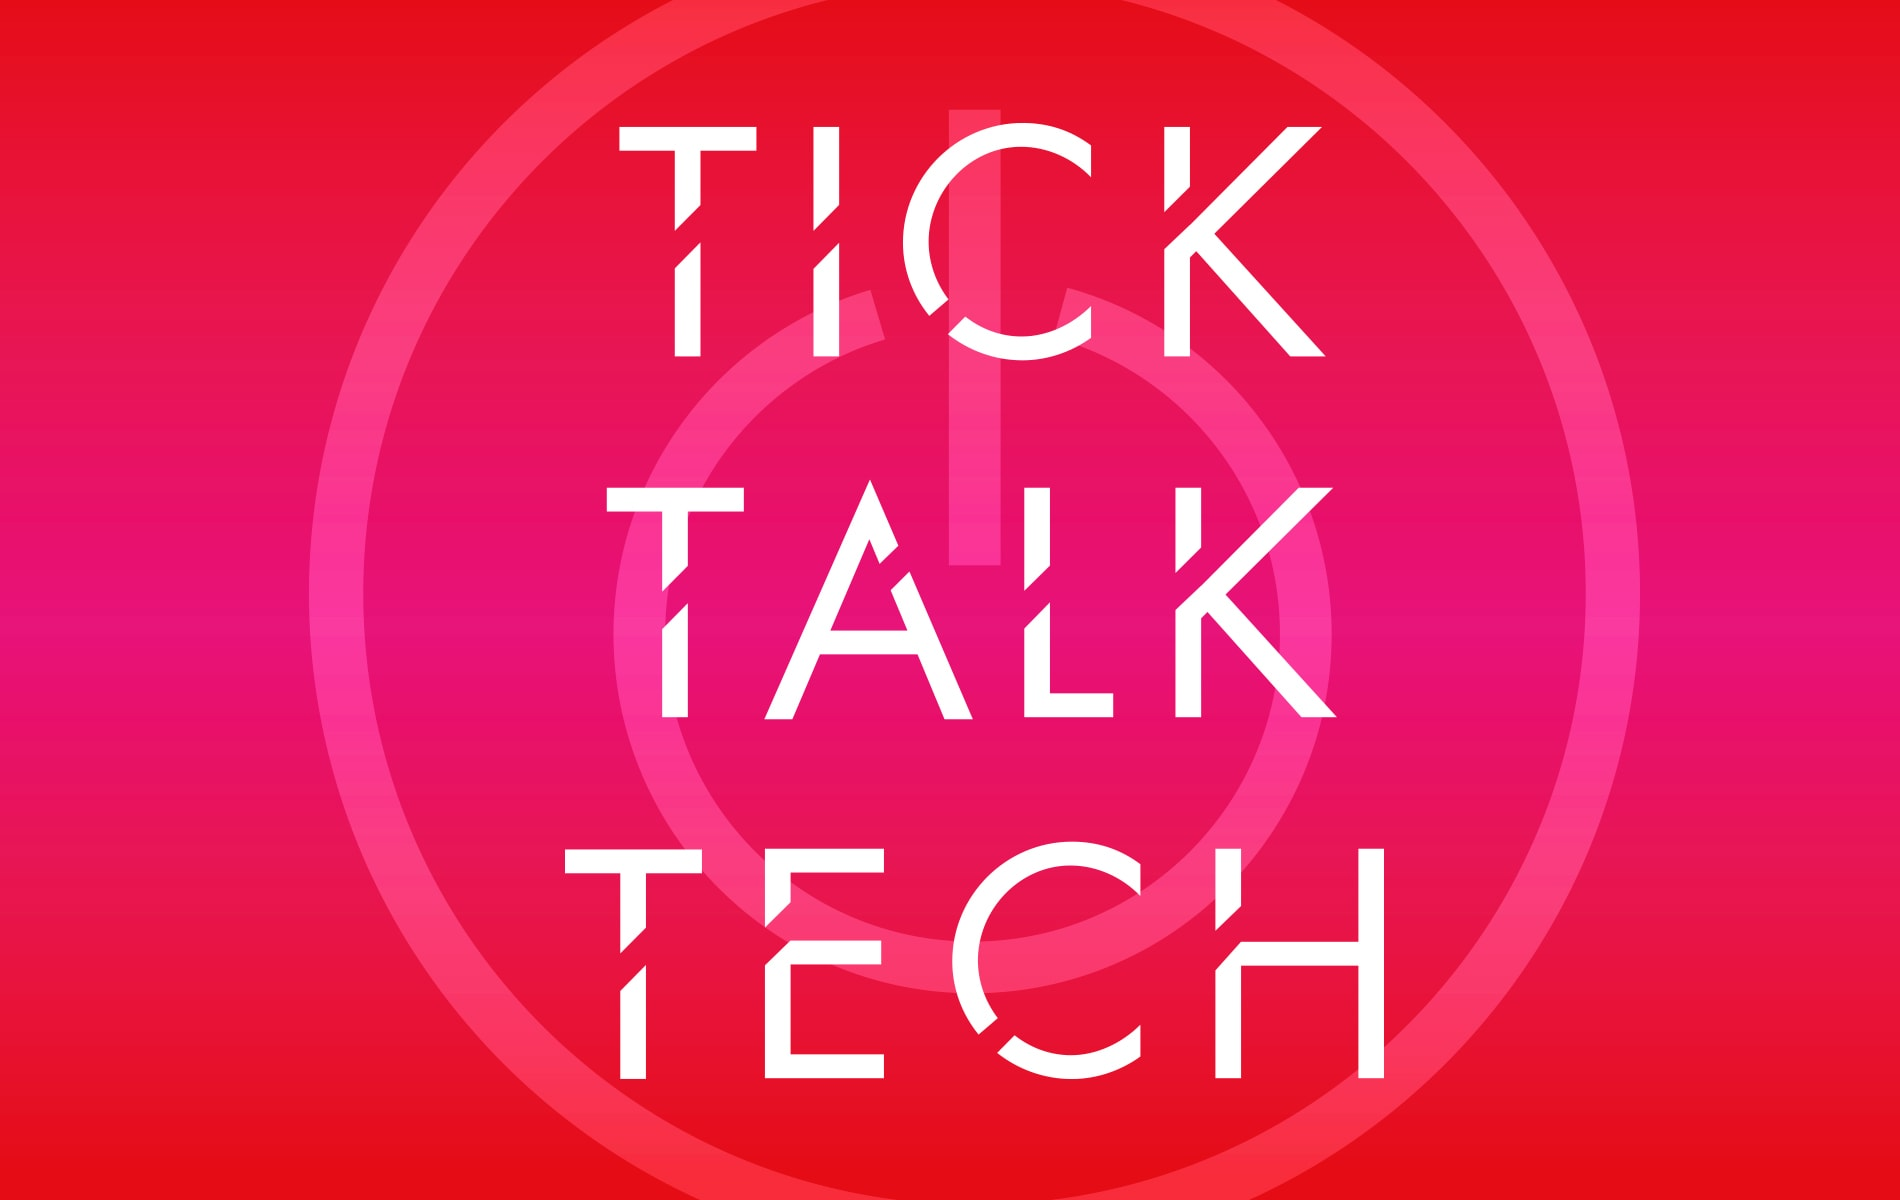 Tick, Tock, Tech, VIE Magazine June 2018